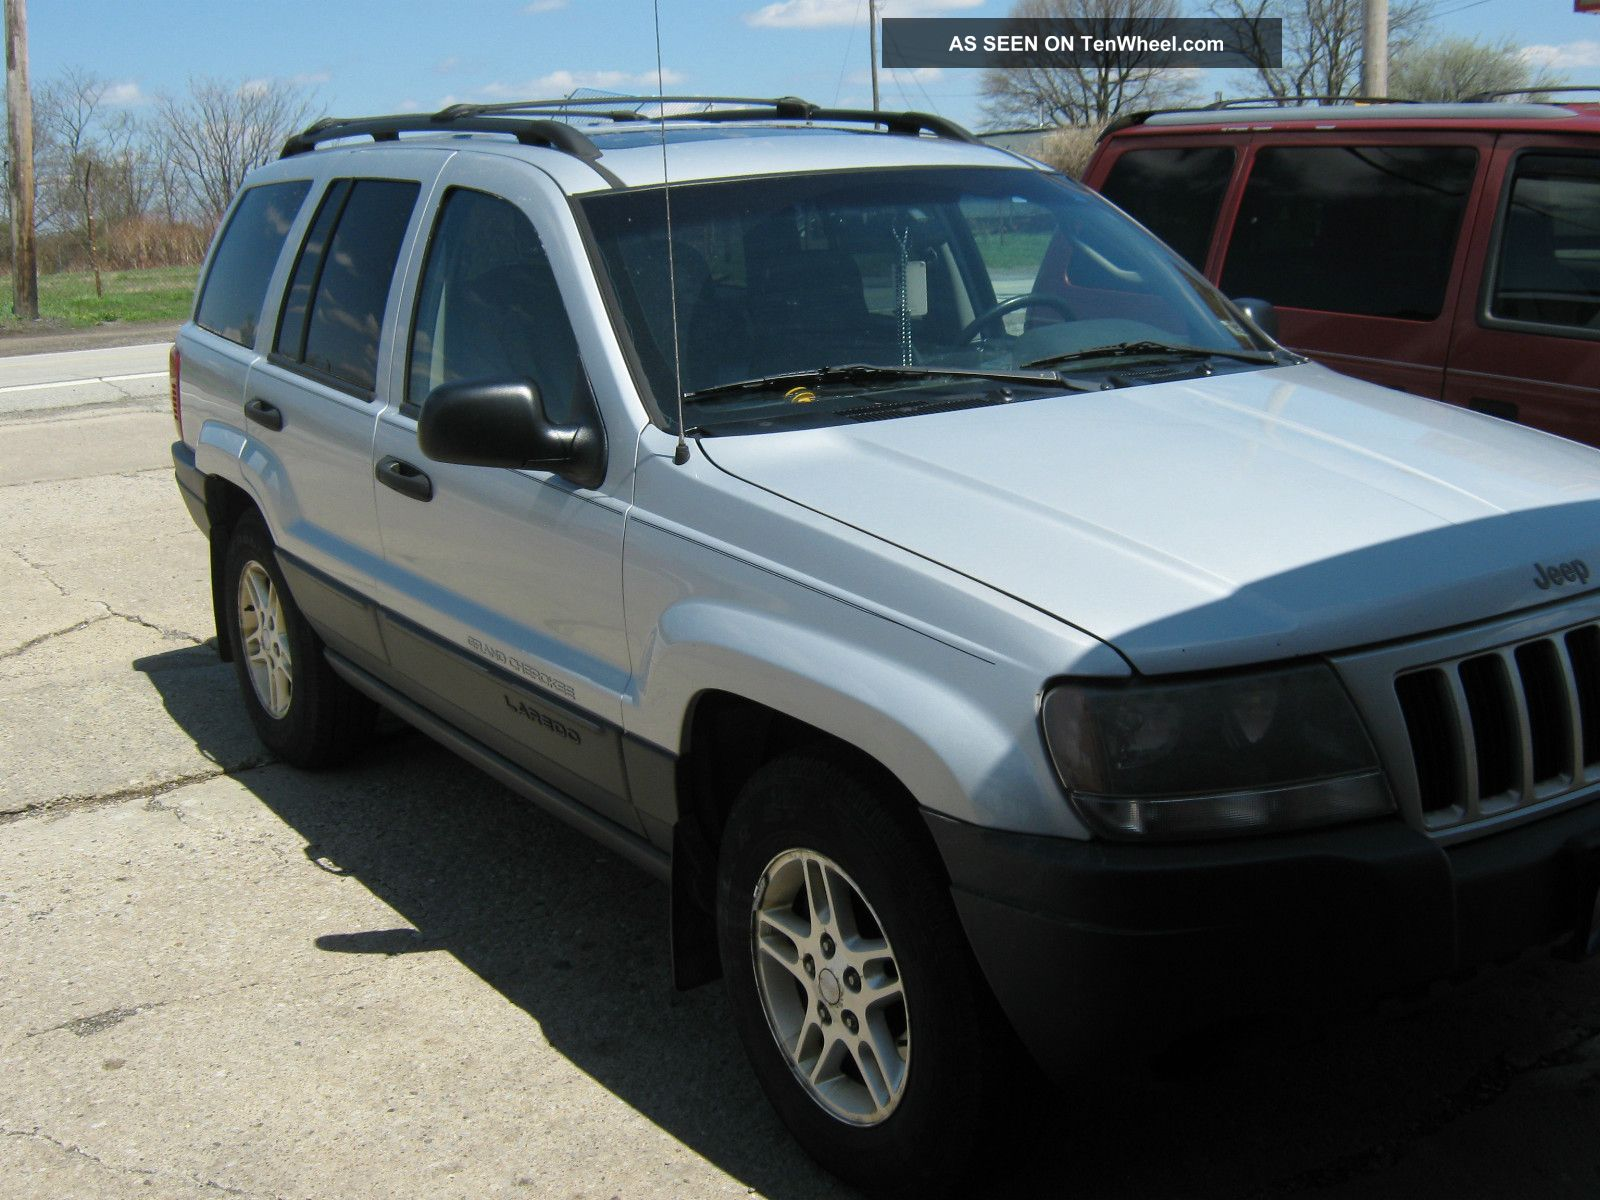 2004 jeep grand cherokee laredo 6cyl auto w power sun roof. Black Bedroom Furniture Sets. Home Design Ideas